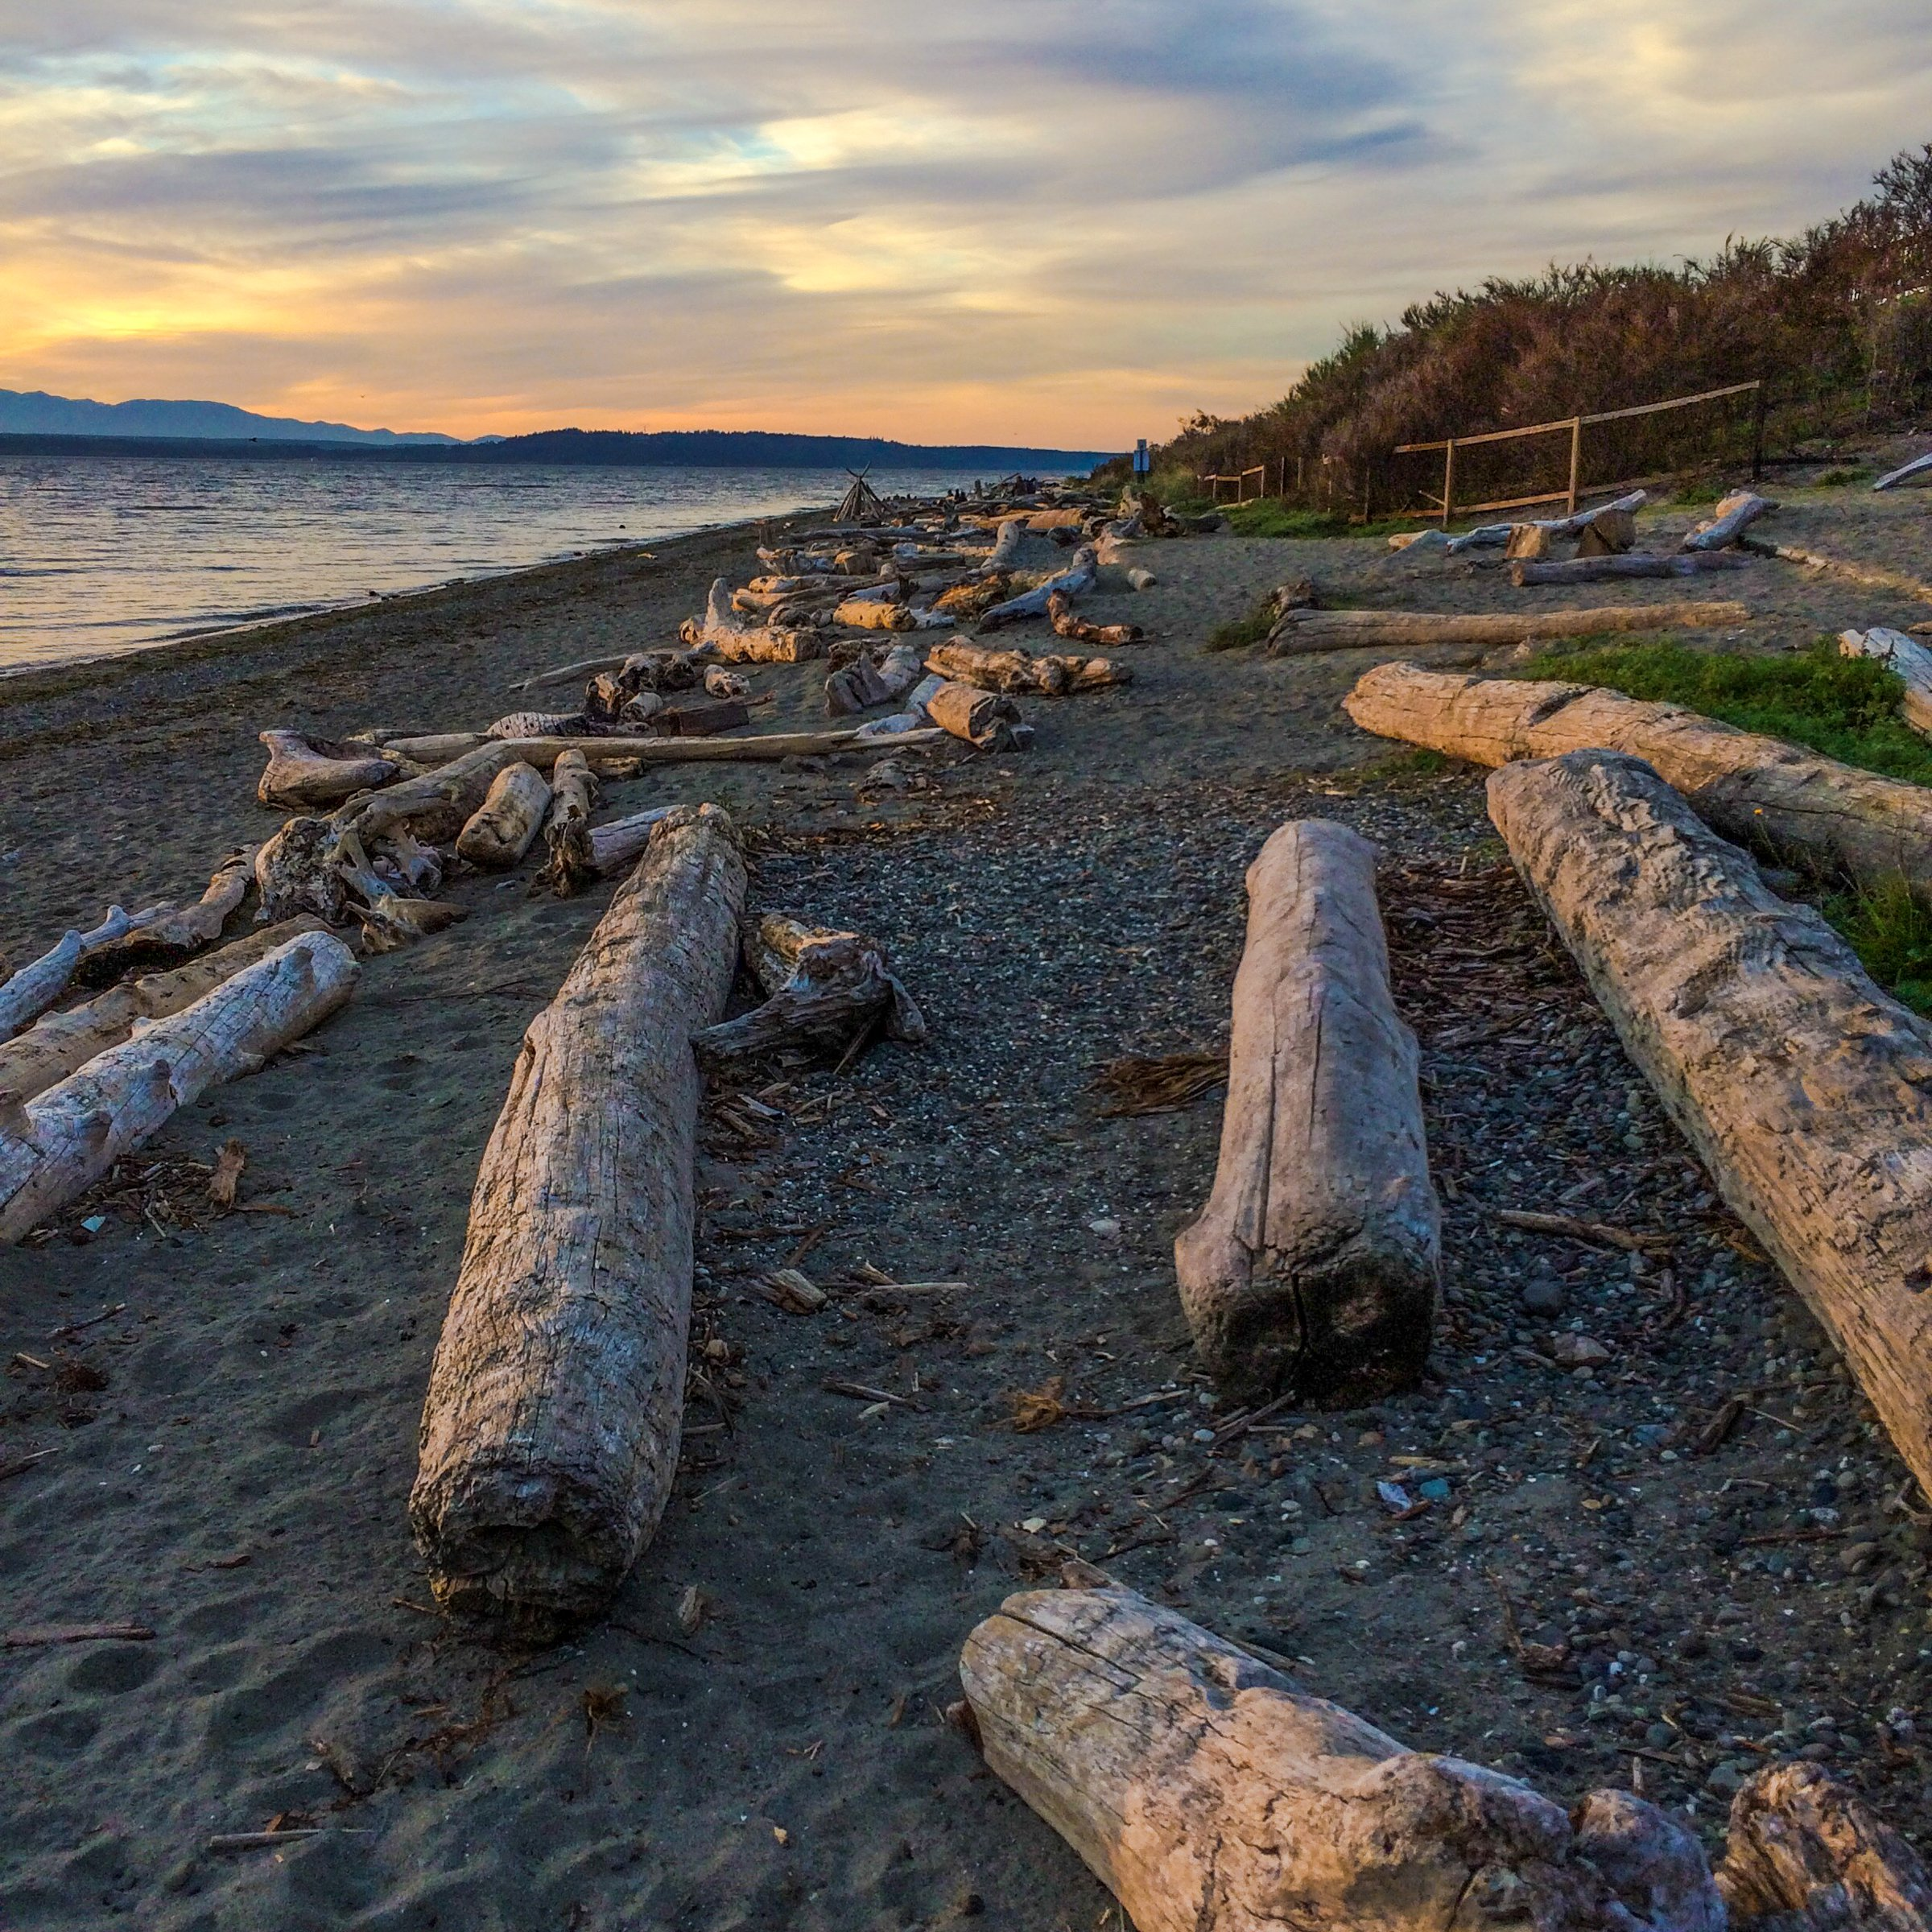 Driftwood logs on the beach in the pacific northwest.